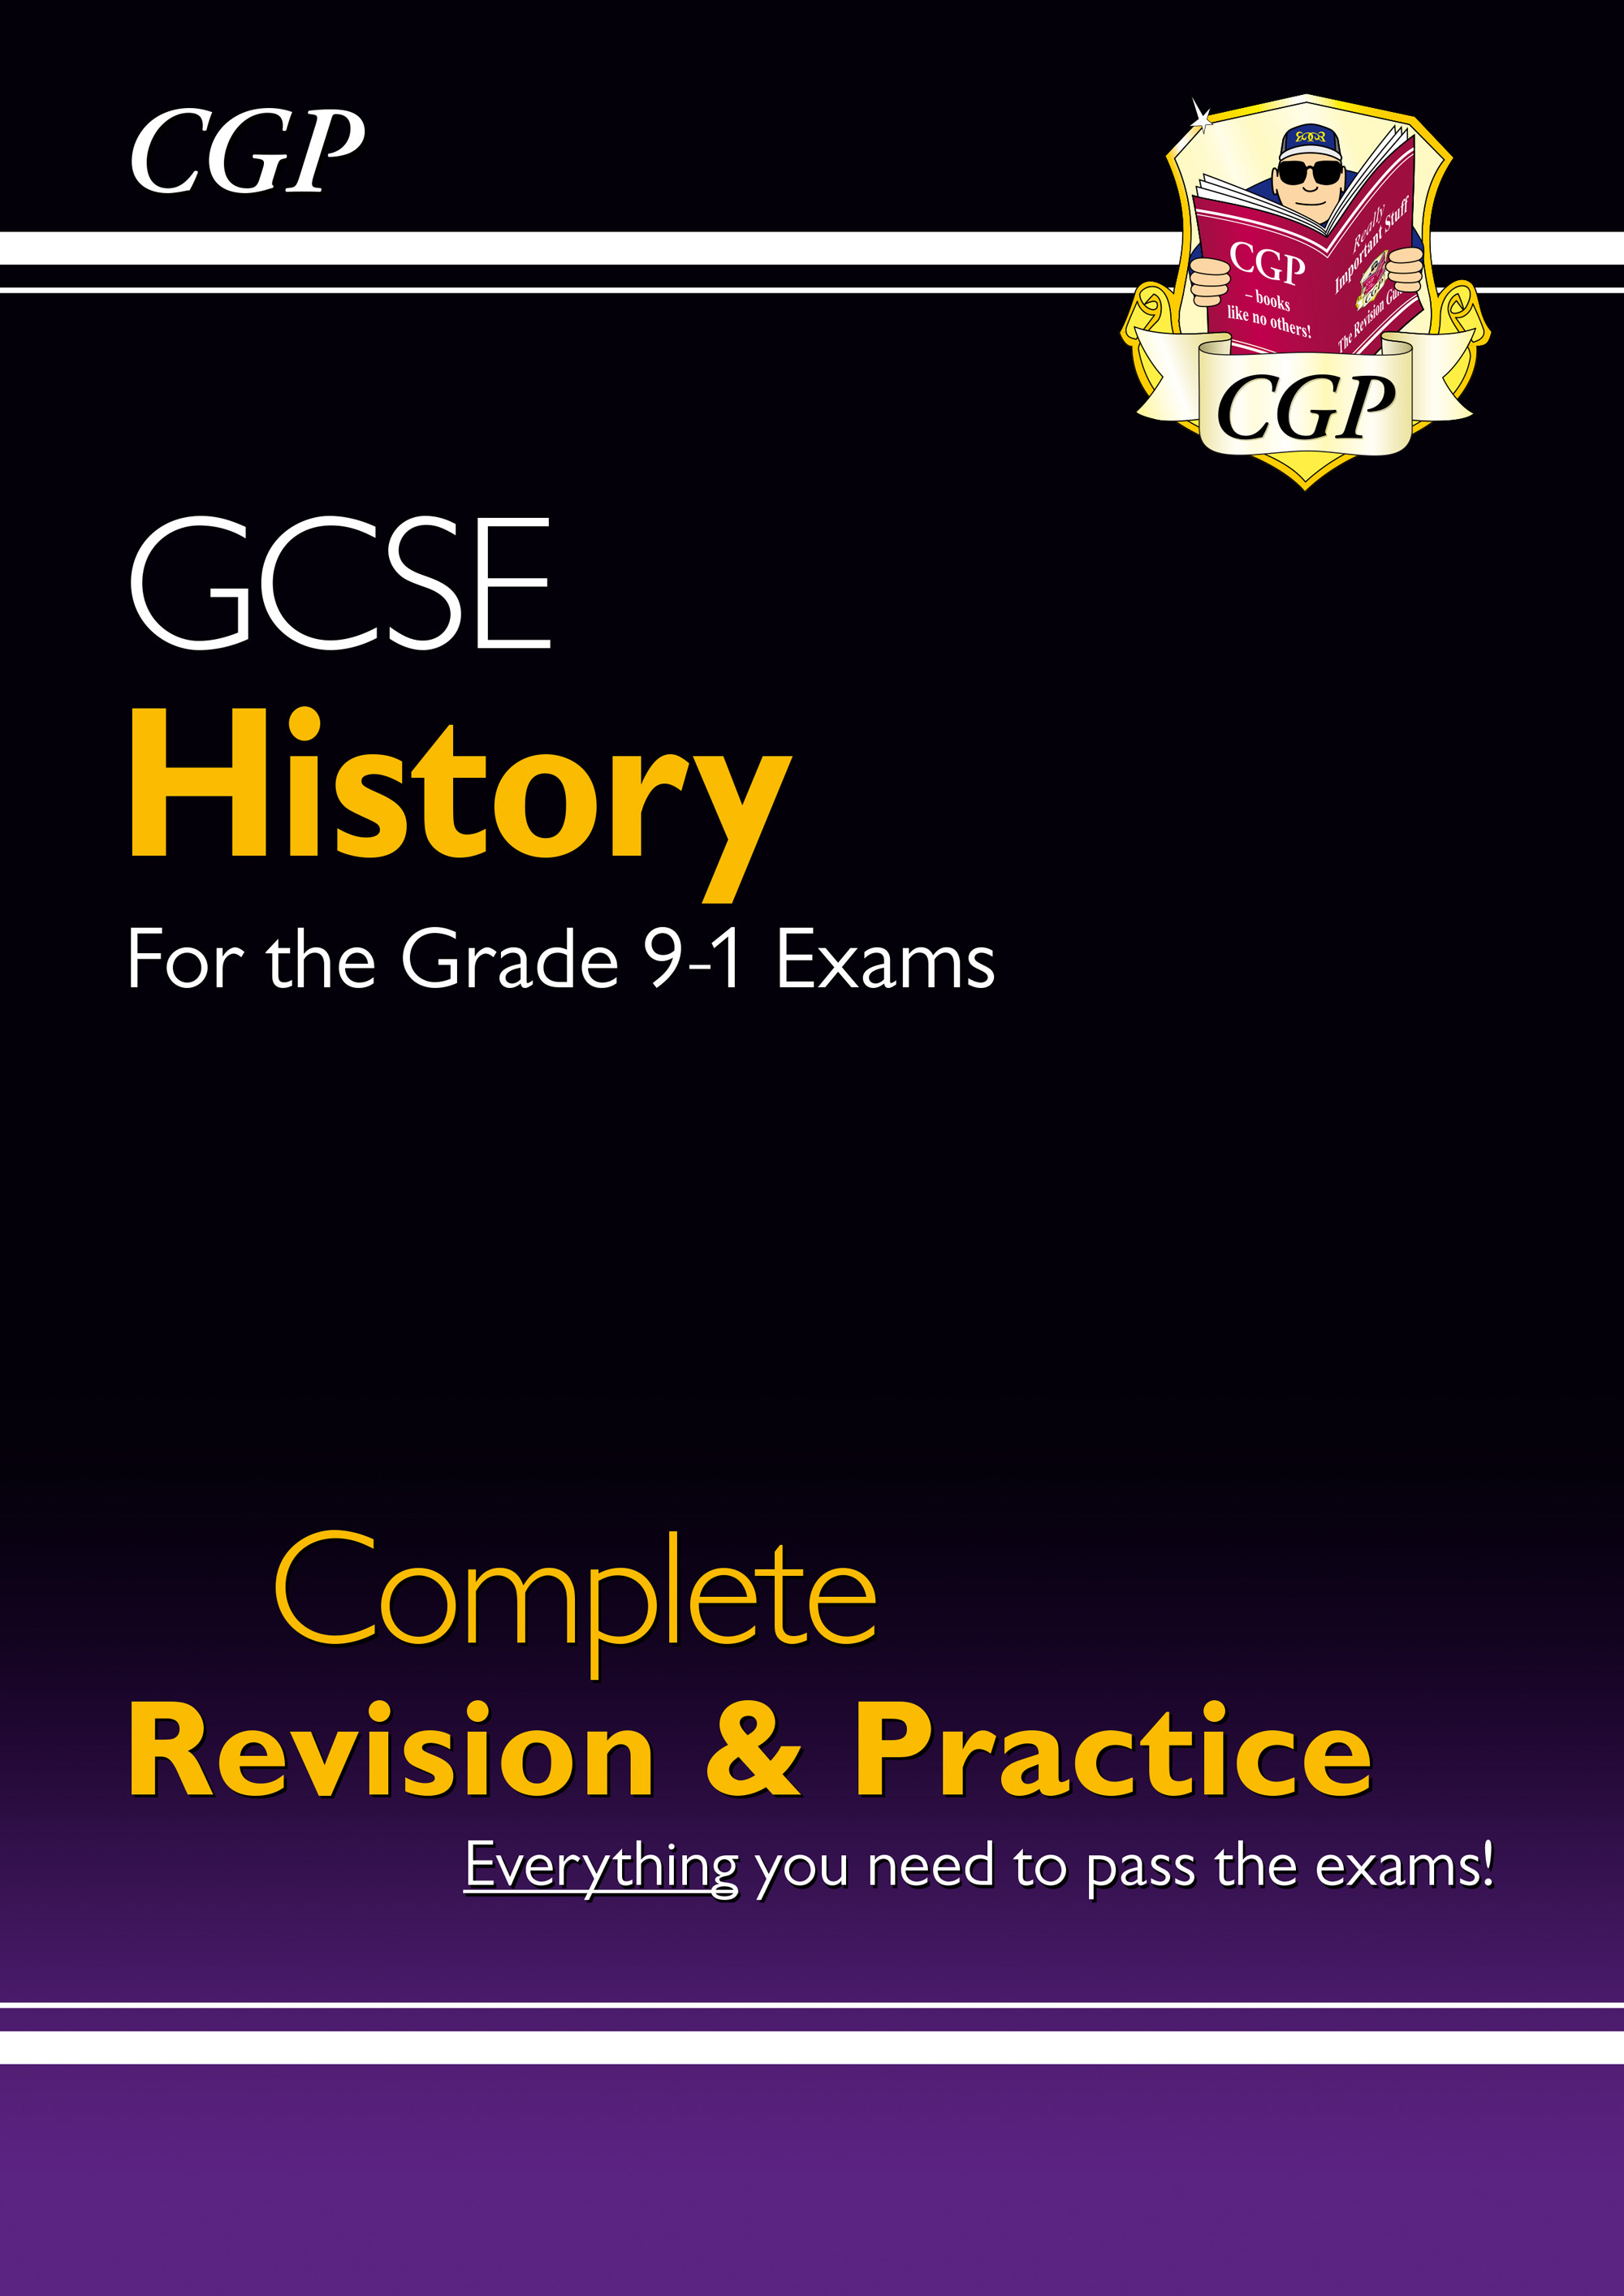 HHS45DK - New GCSE History Complete Revision & Practice - for the Grade 9-1 Course